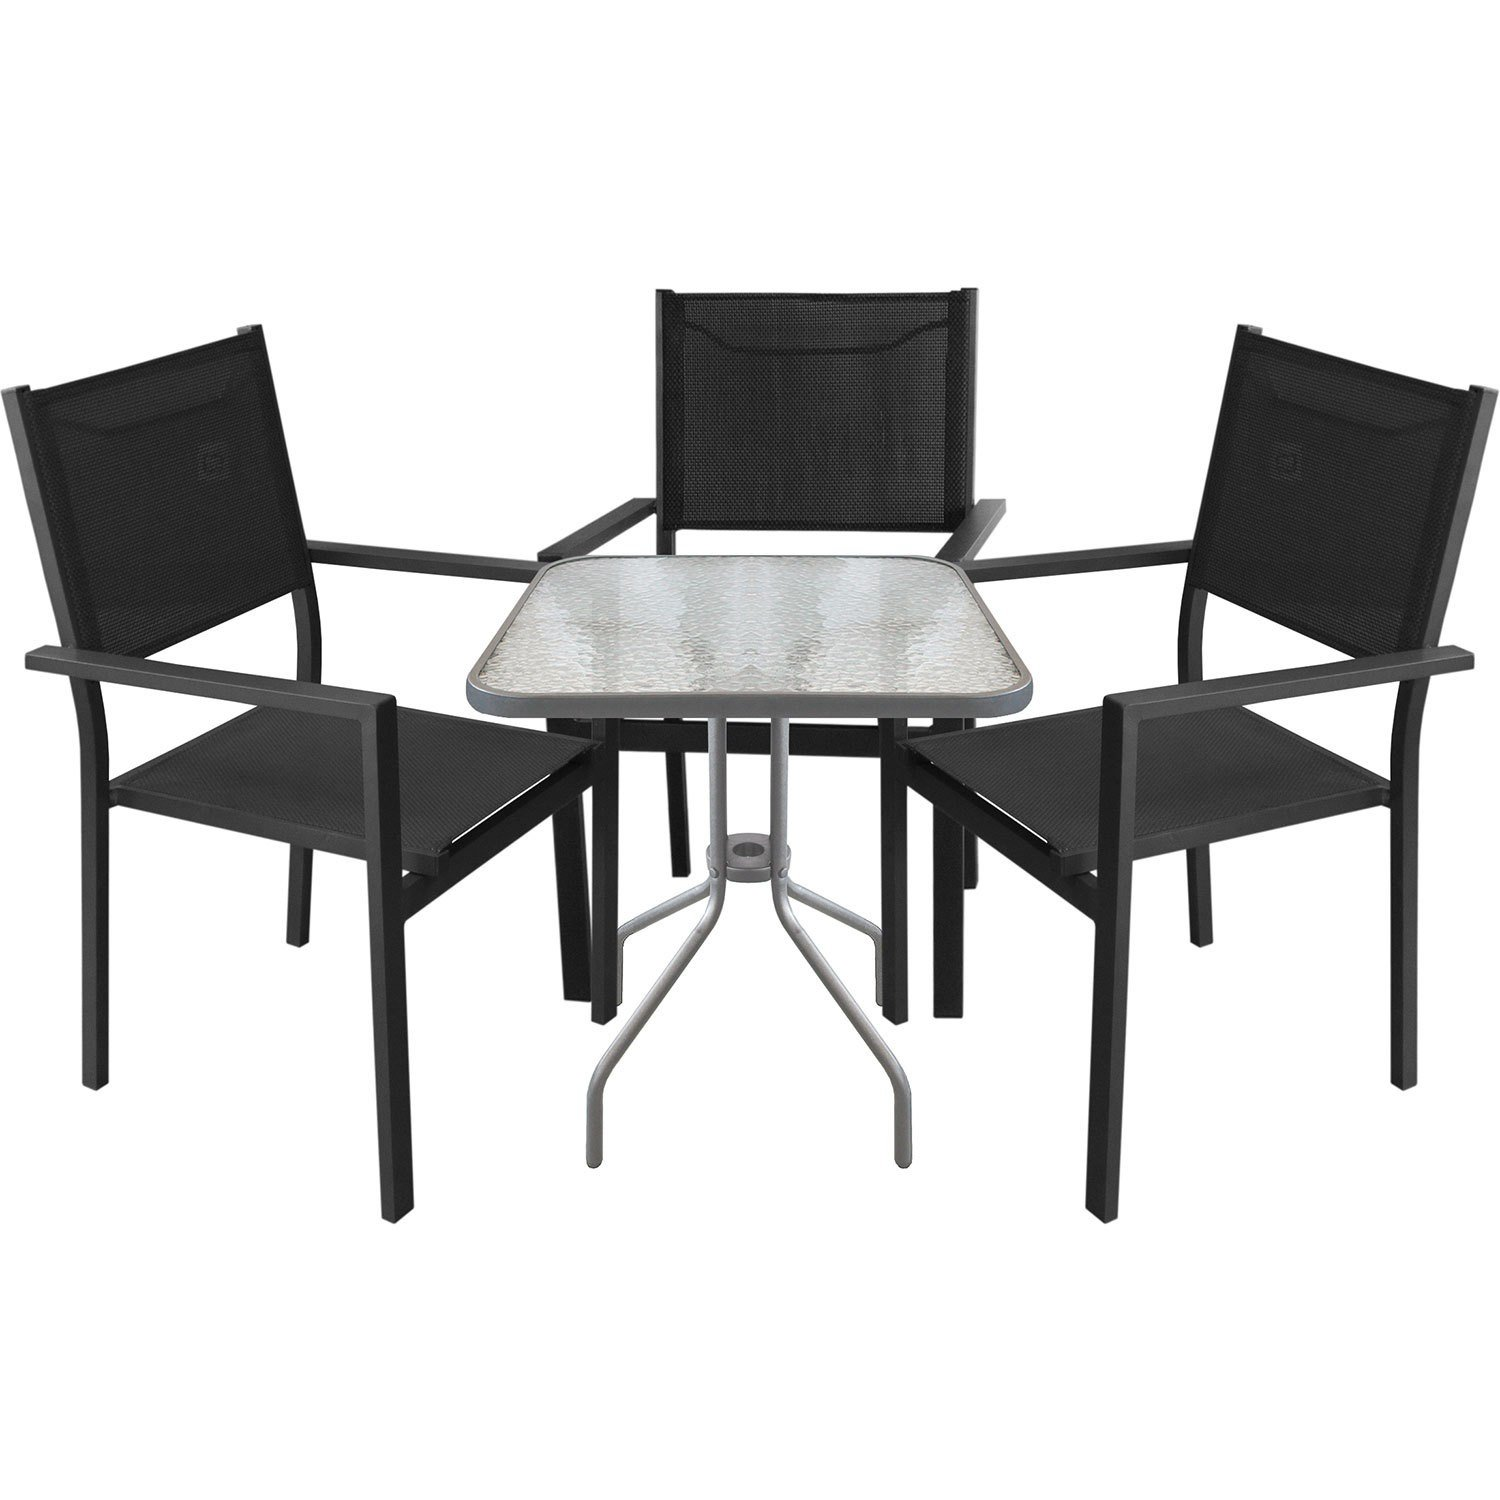 4tlg bistrogarnitur gartengarnitur bistrotisch 60x60xh71cm gartentisch mit tischglasplatte inkl. Black Bedroom Furniture Sets. Home Design Ideas